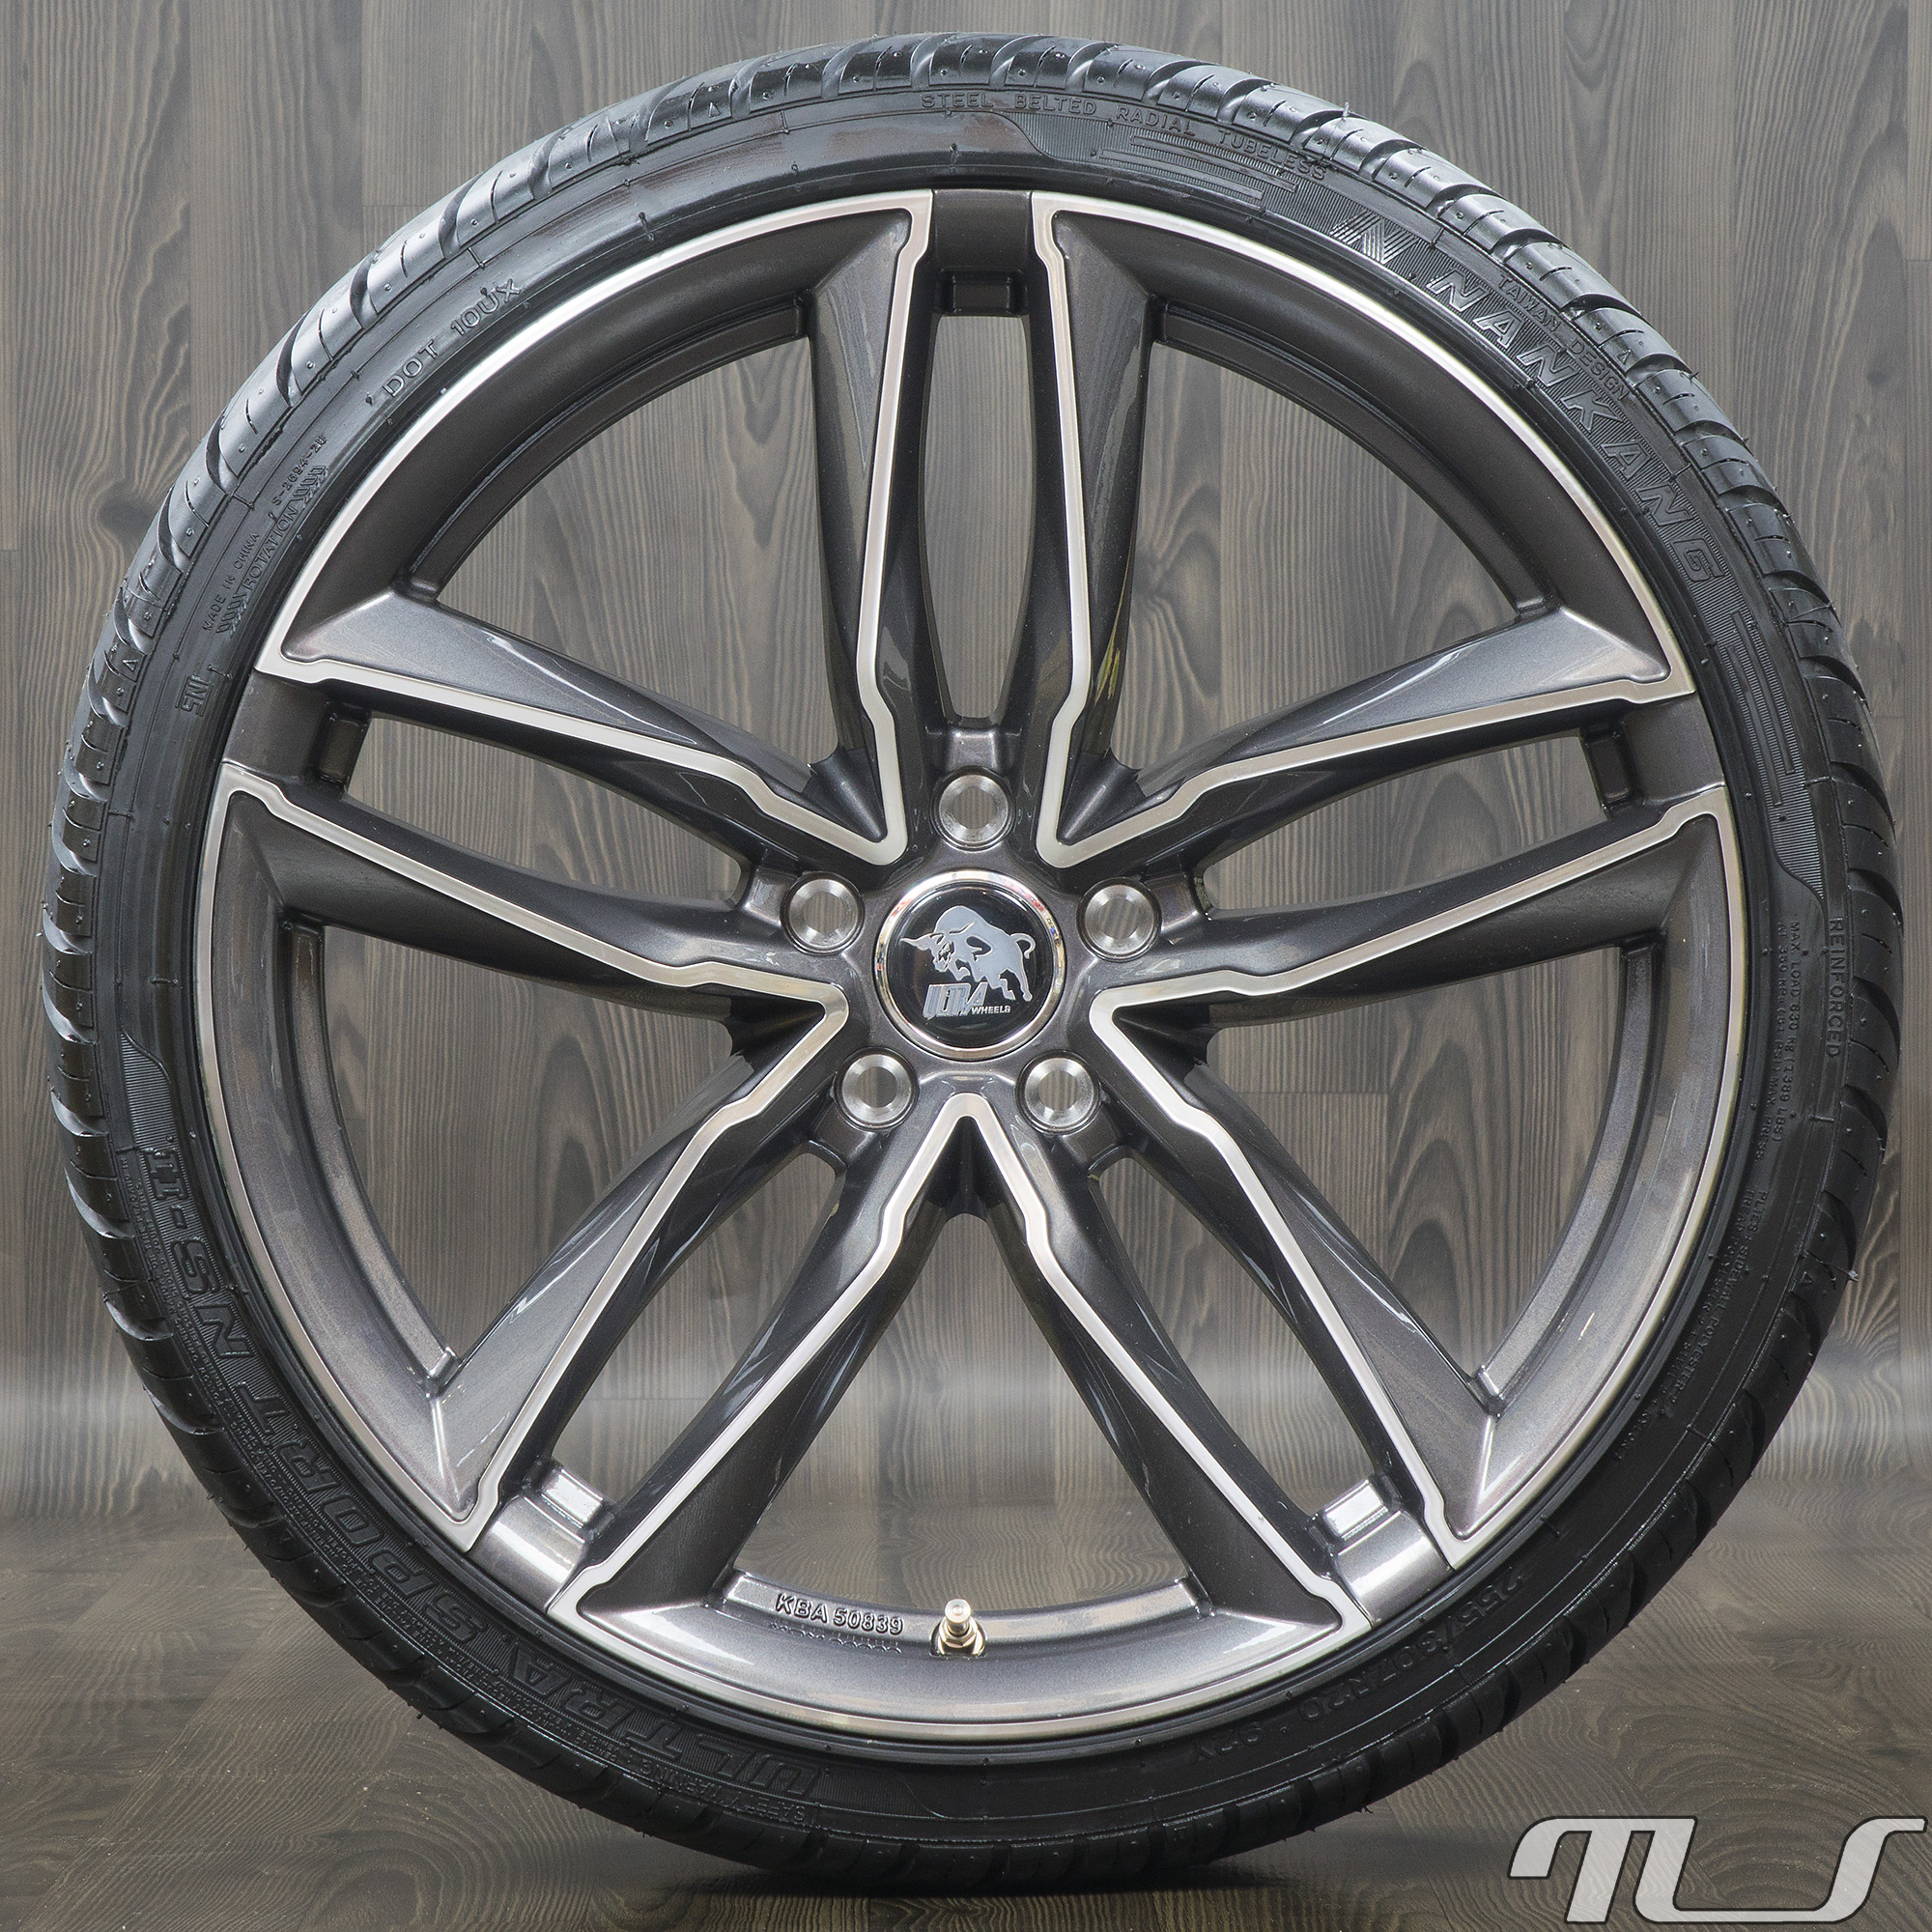 19 Inch Alloy Wheels For Audi A3 8v A4 S4 A5 S5 A6 A7 A8